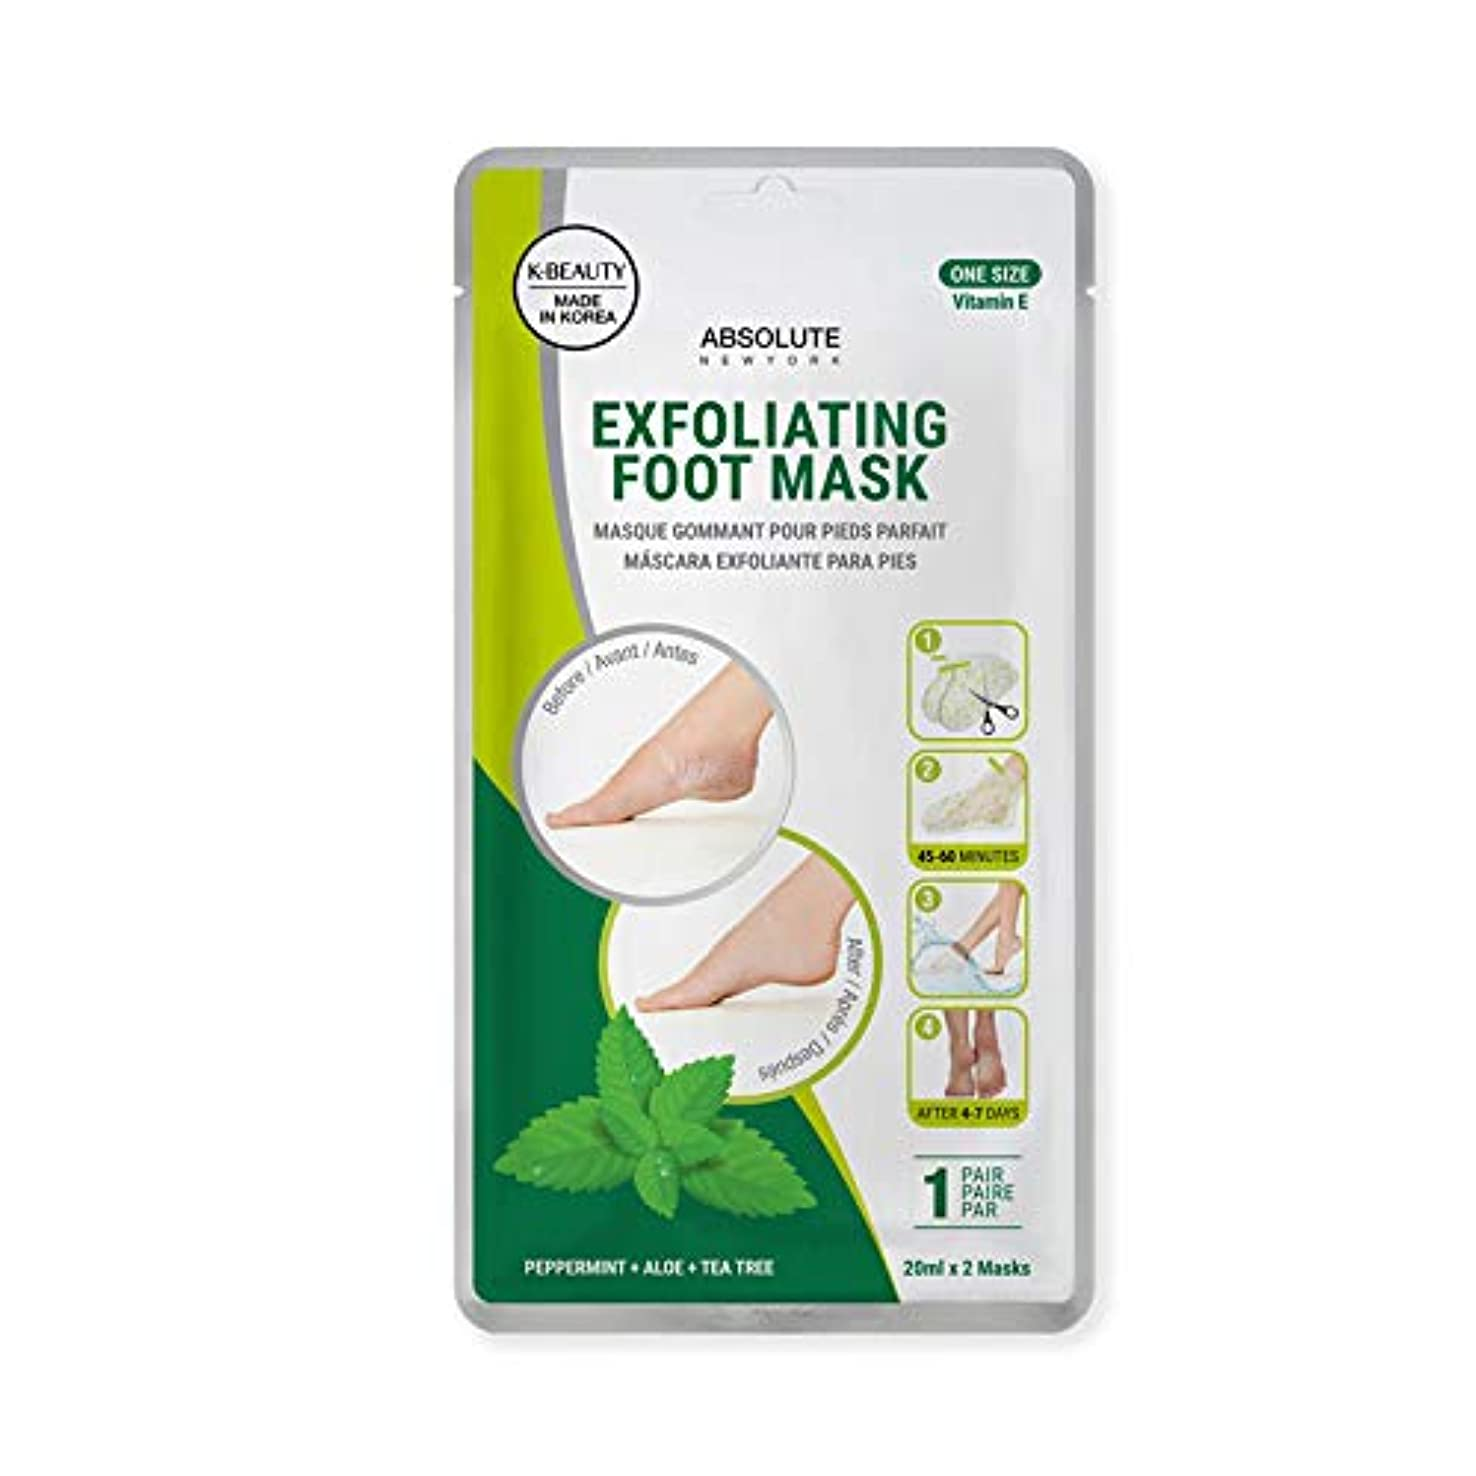 検体多年生ママ(3 Pack) ABSOLUTE Exfoliating Foot Mask - Peppermint + Aloe + Tea Tree (並行輸入品)